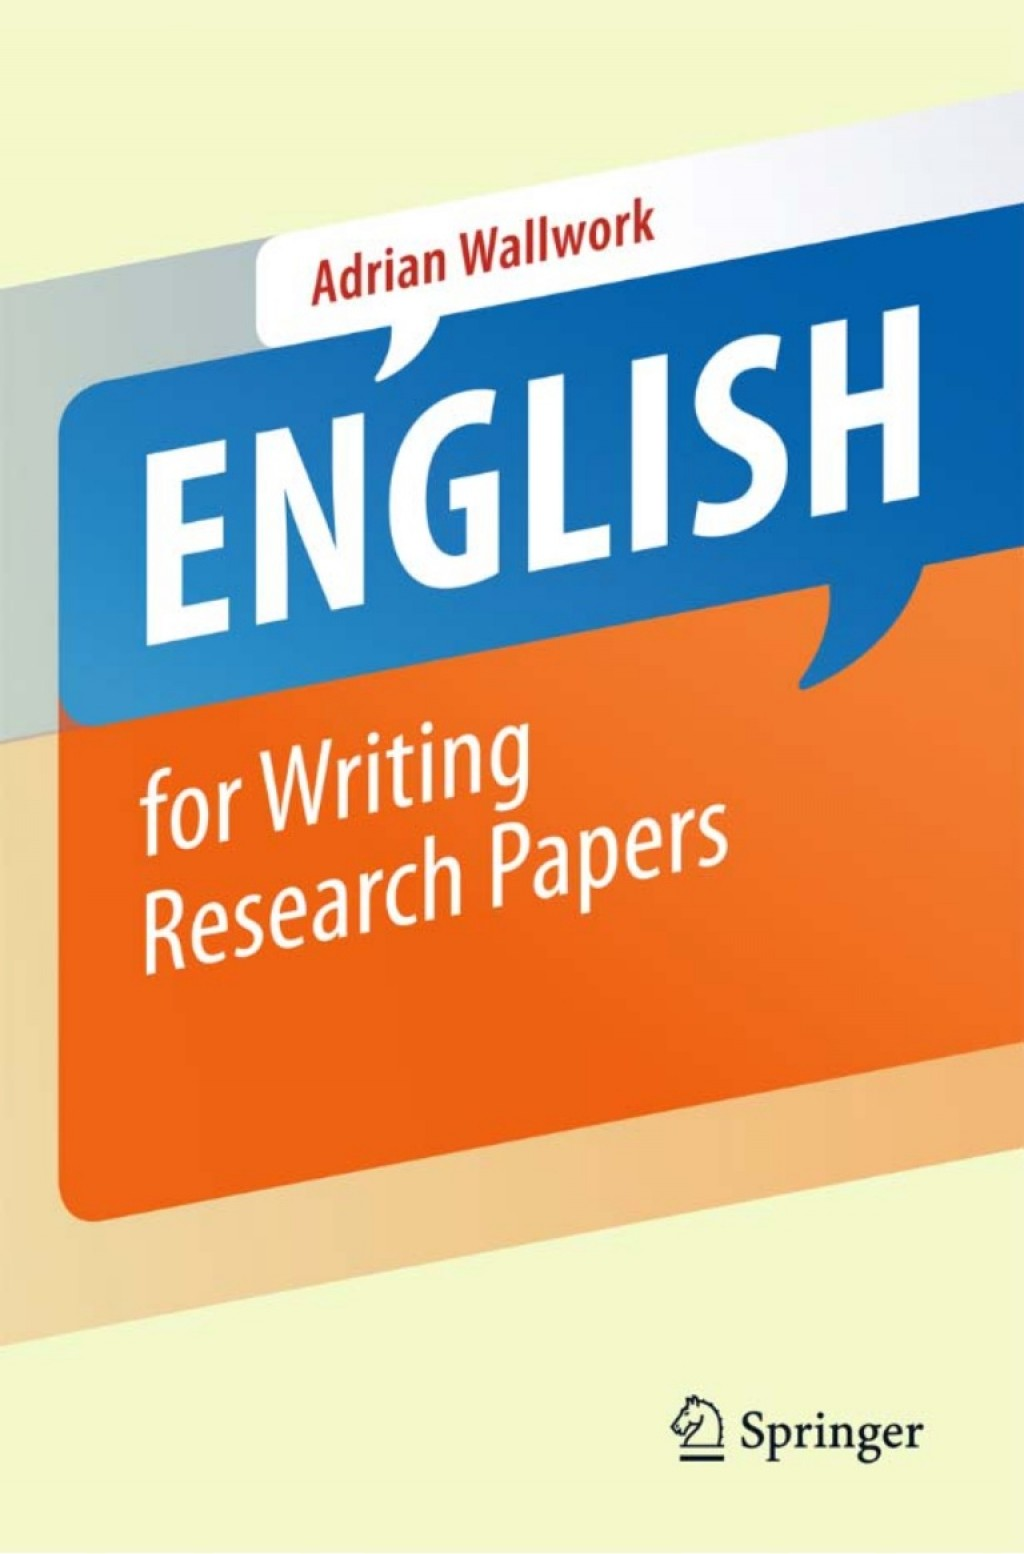 019 Englishforwritingresearchpapers Conversion Gate01 Thumbnail Writing Research Striking Paper Papers Lester 16th Edition A Complete Guide James D. Large